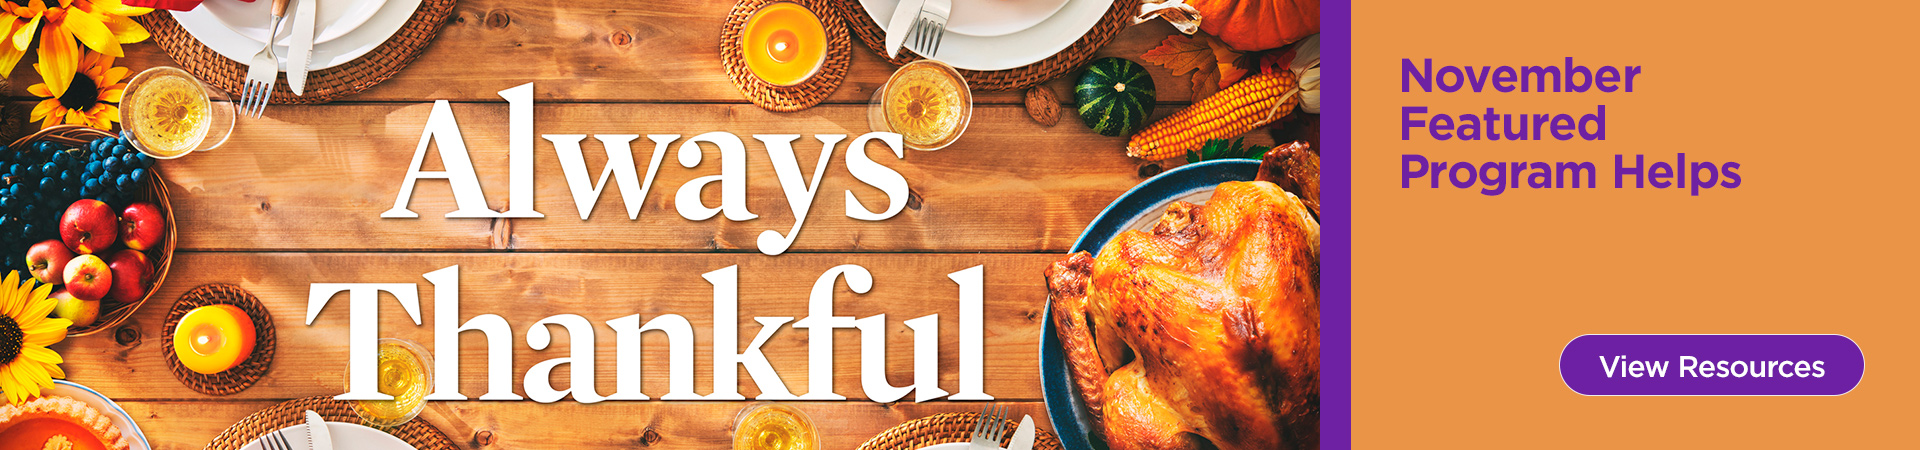 Featured Program Helps for November: Always Thankful